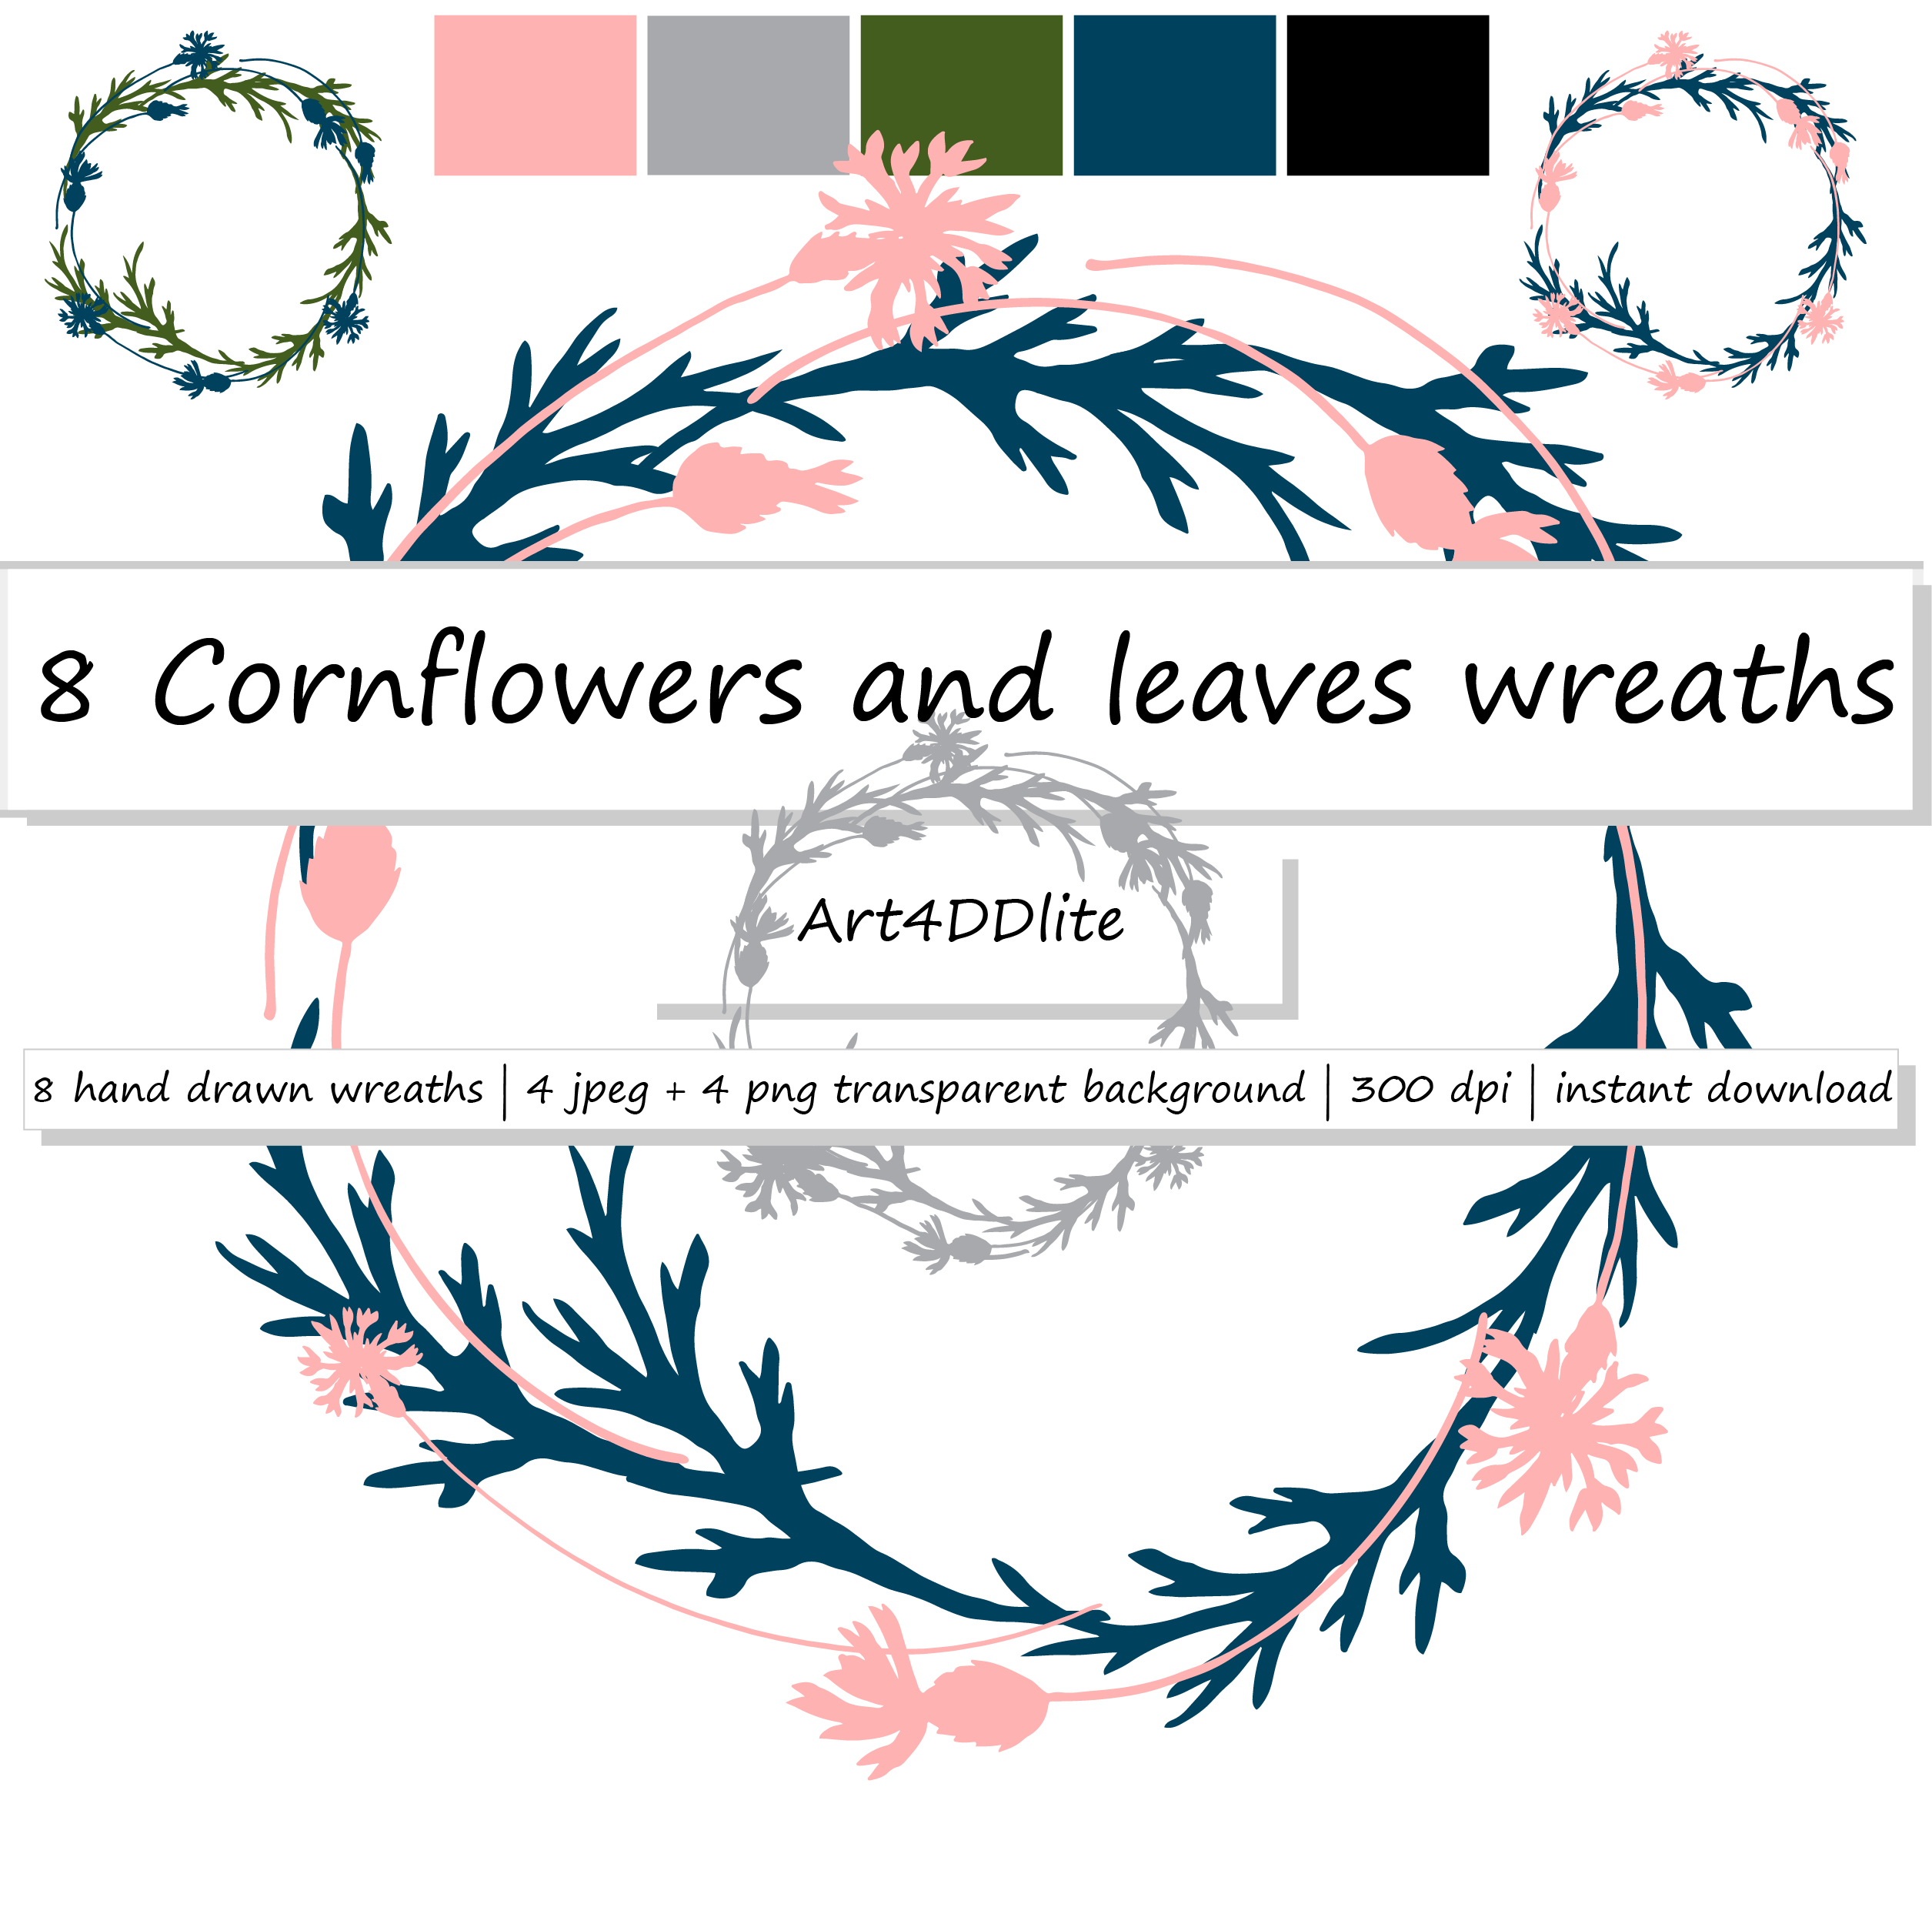 Cornflowers and Leaves Wreaths Clipart example image 1